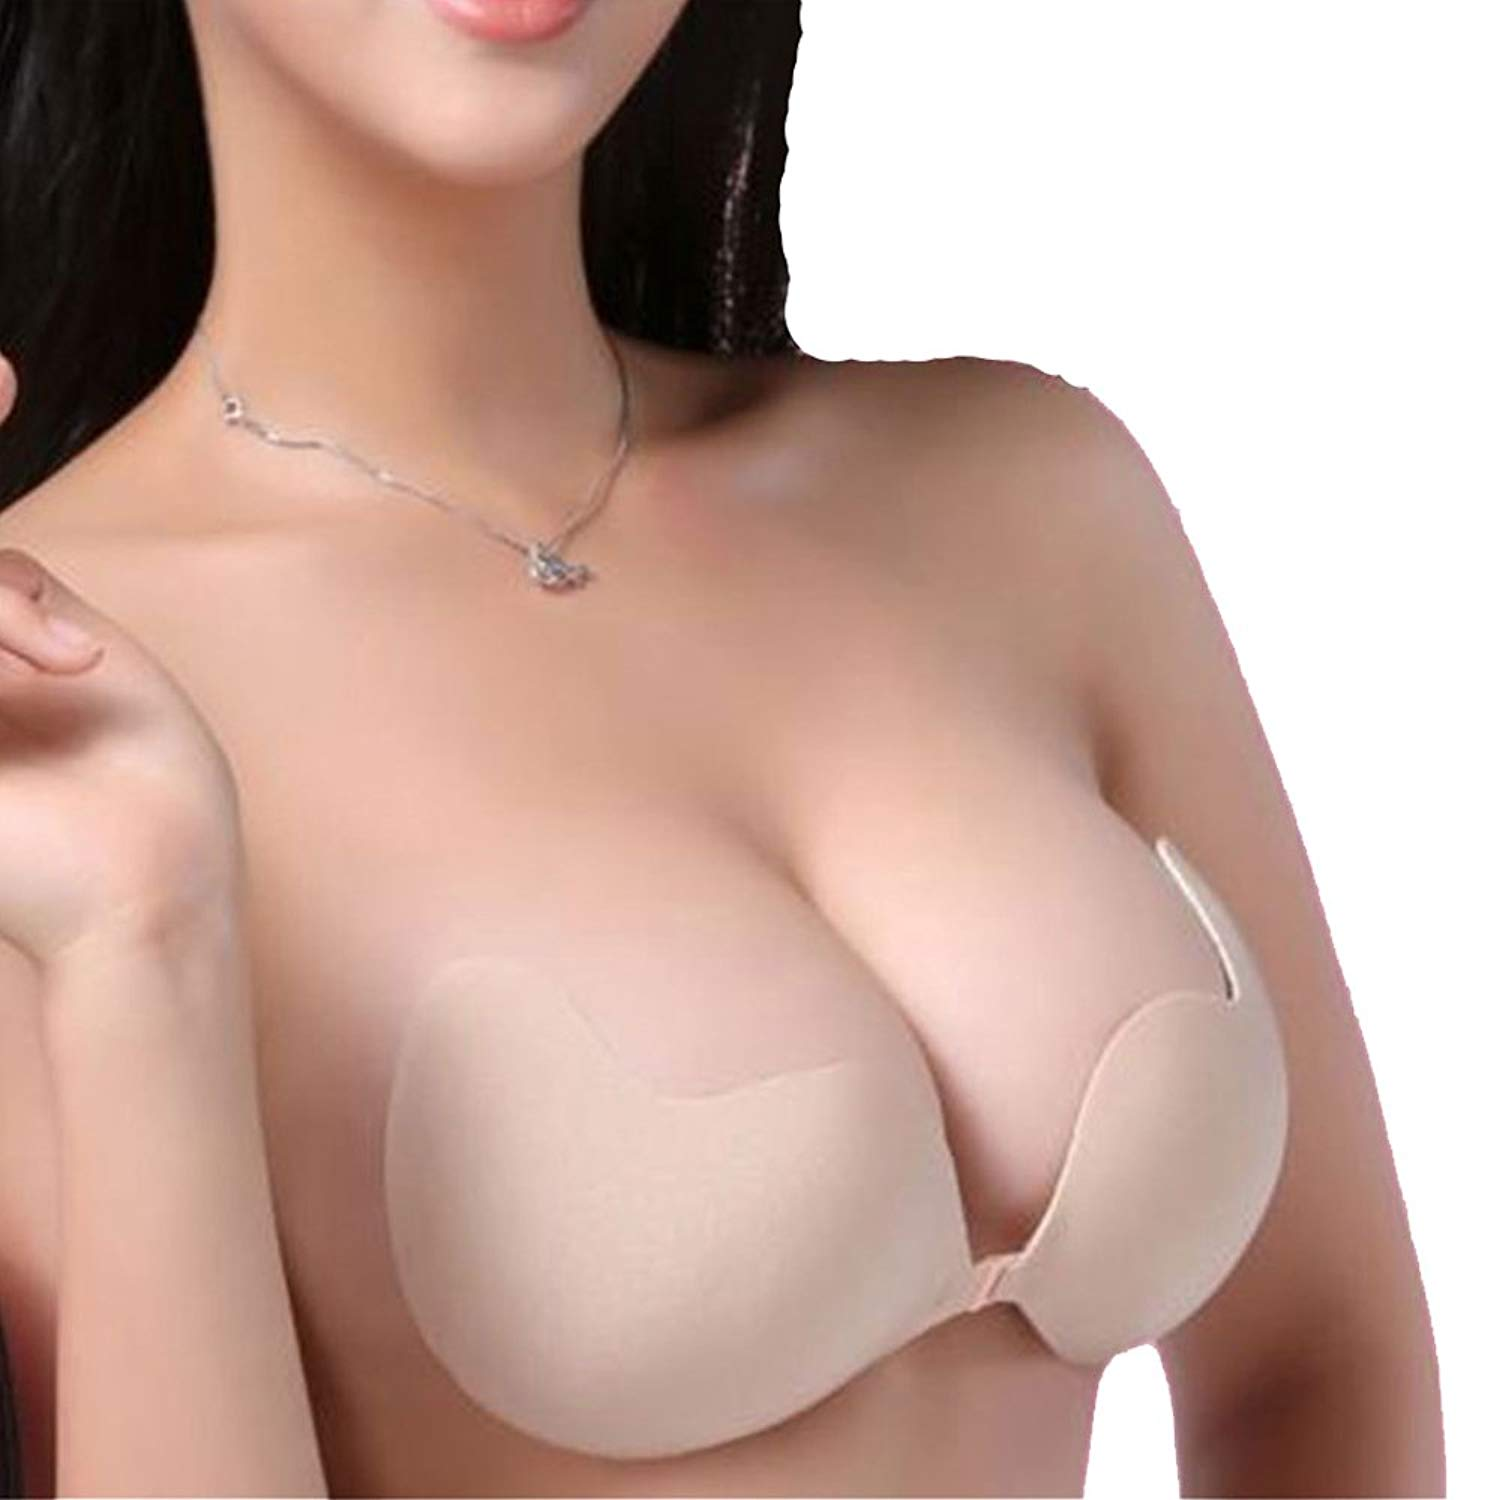 HIOFFER 2 Styles Push Up Bras Self-Adhesive Strapless Bra Invisible Sexy Brassiere Lingerie Backless Bralette for Women